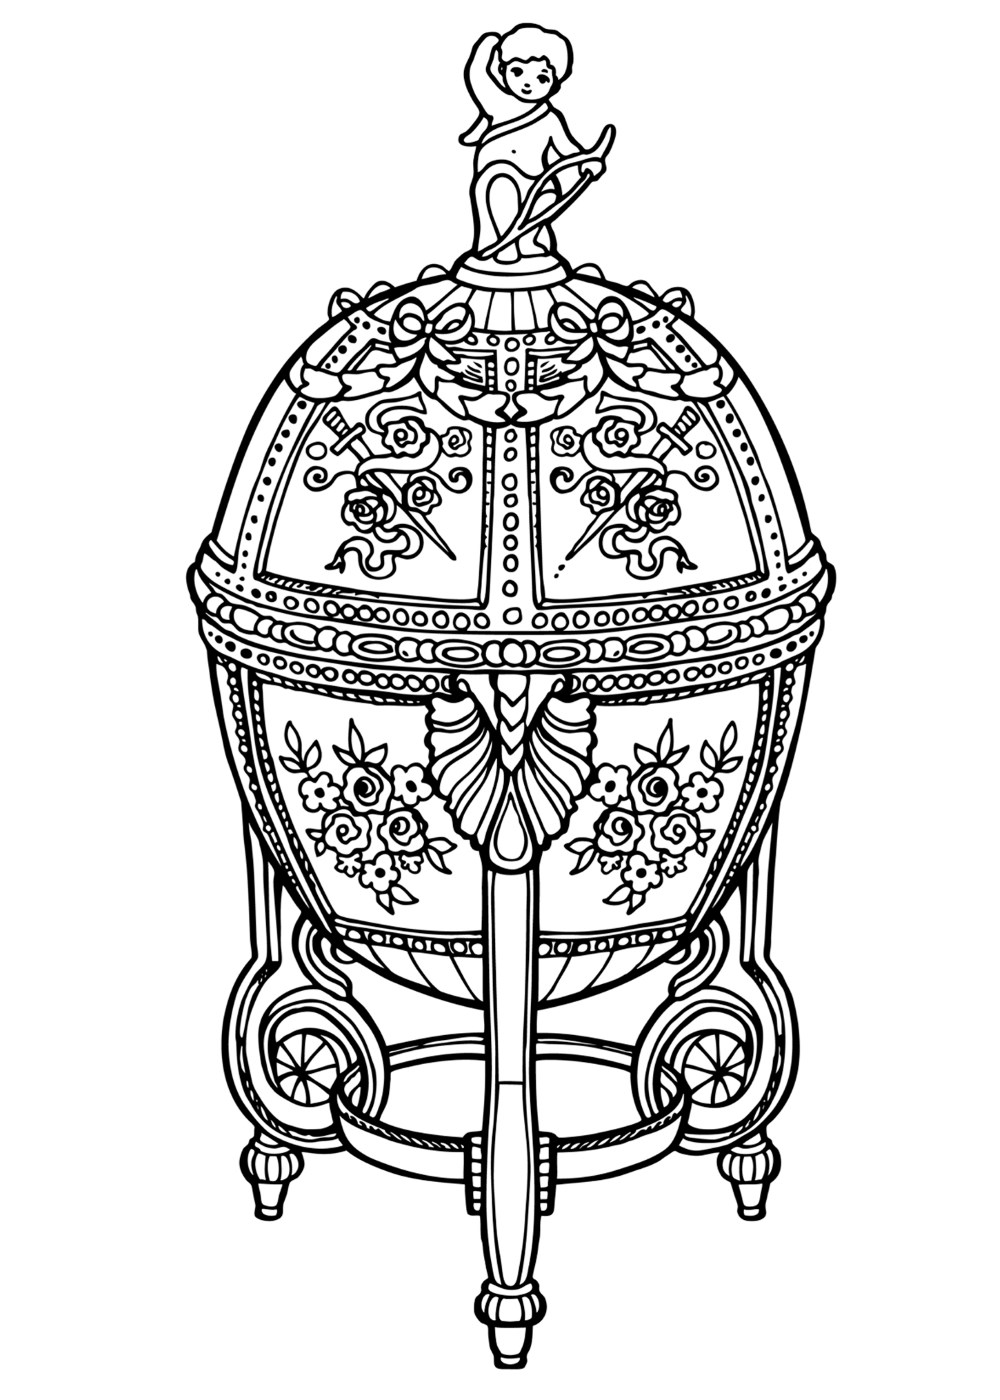 Russian Easter Eggs Coloring Pages.  Coloring page Faberge Egg